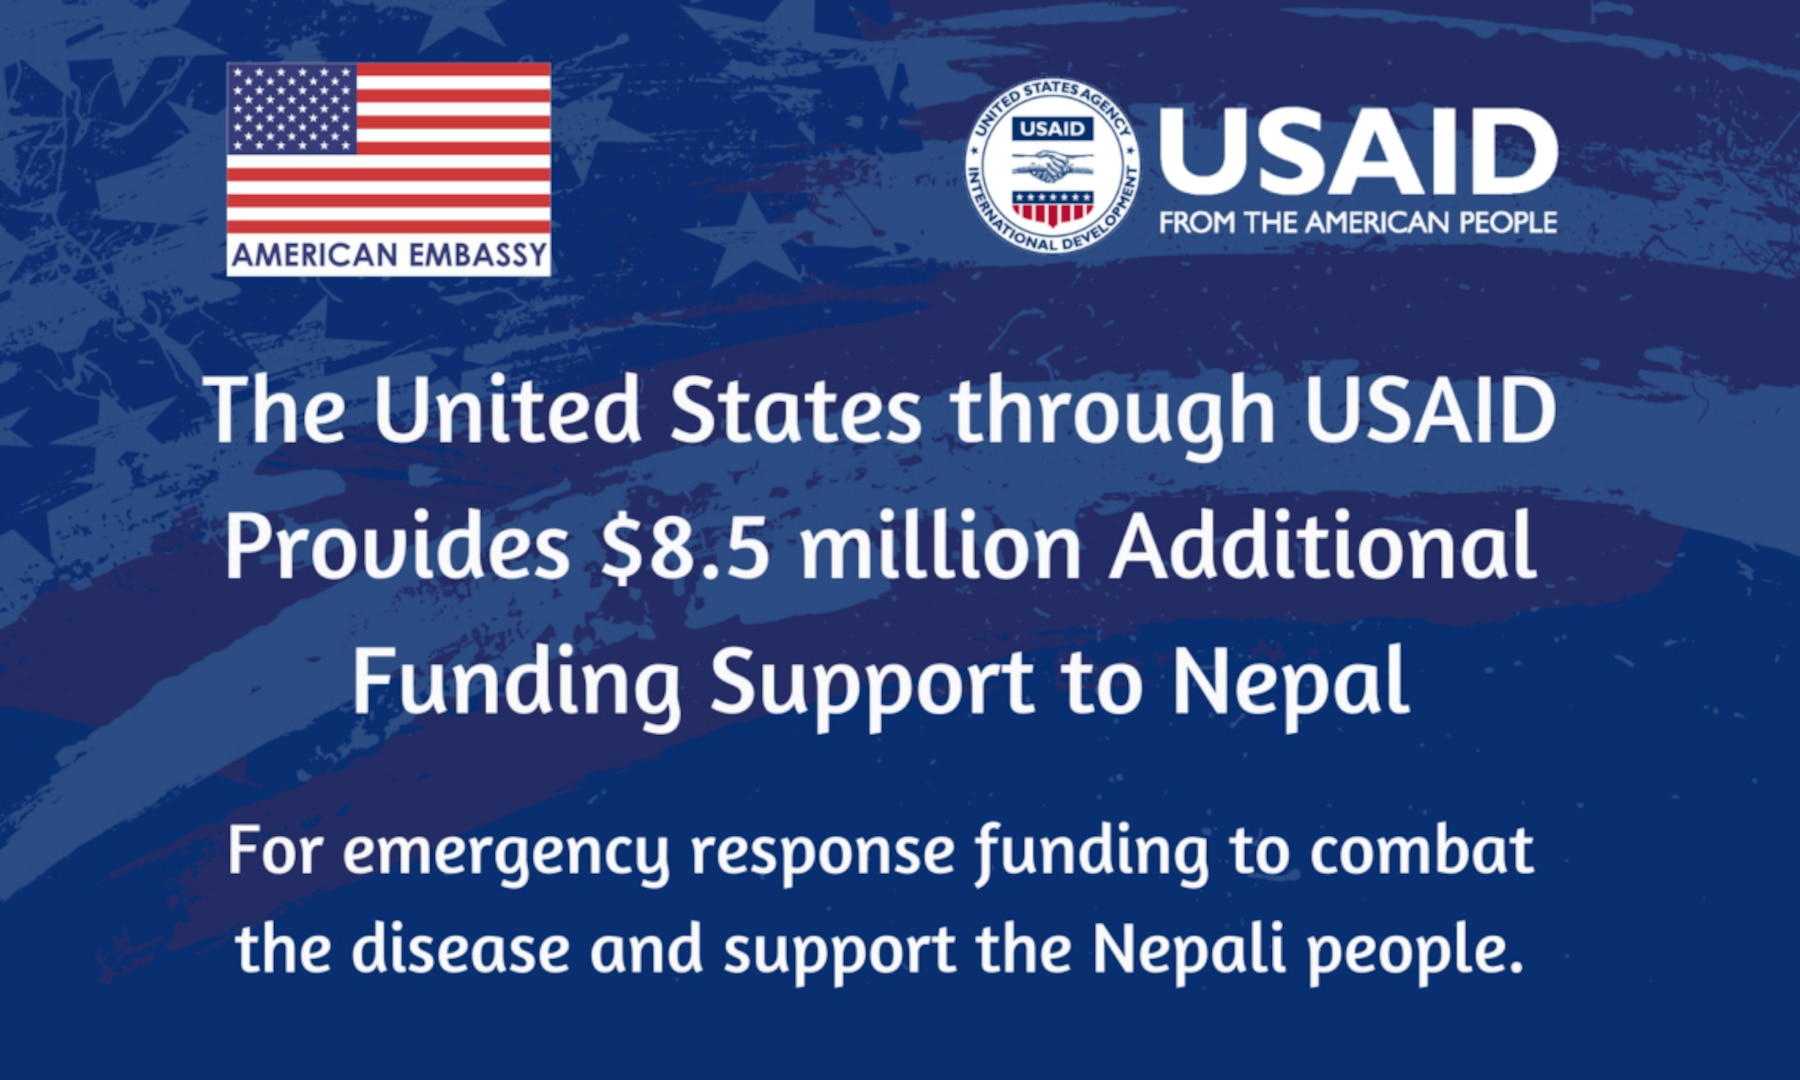 Funding Support to Nepal Amidst the Second Wave of COVID-19